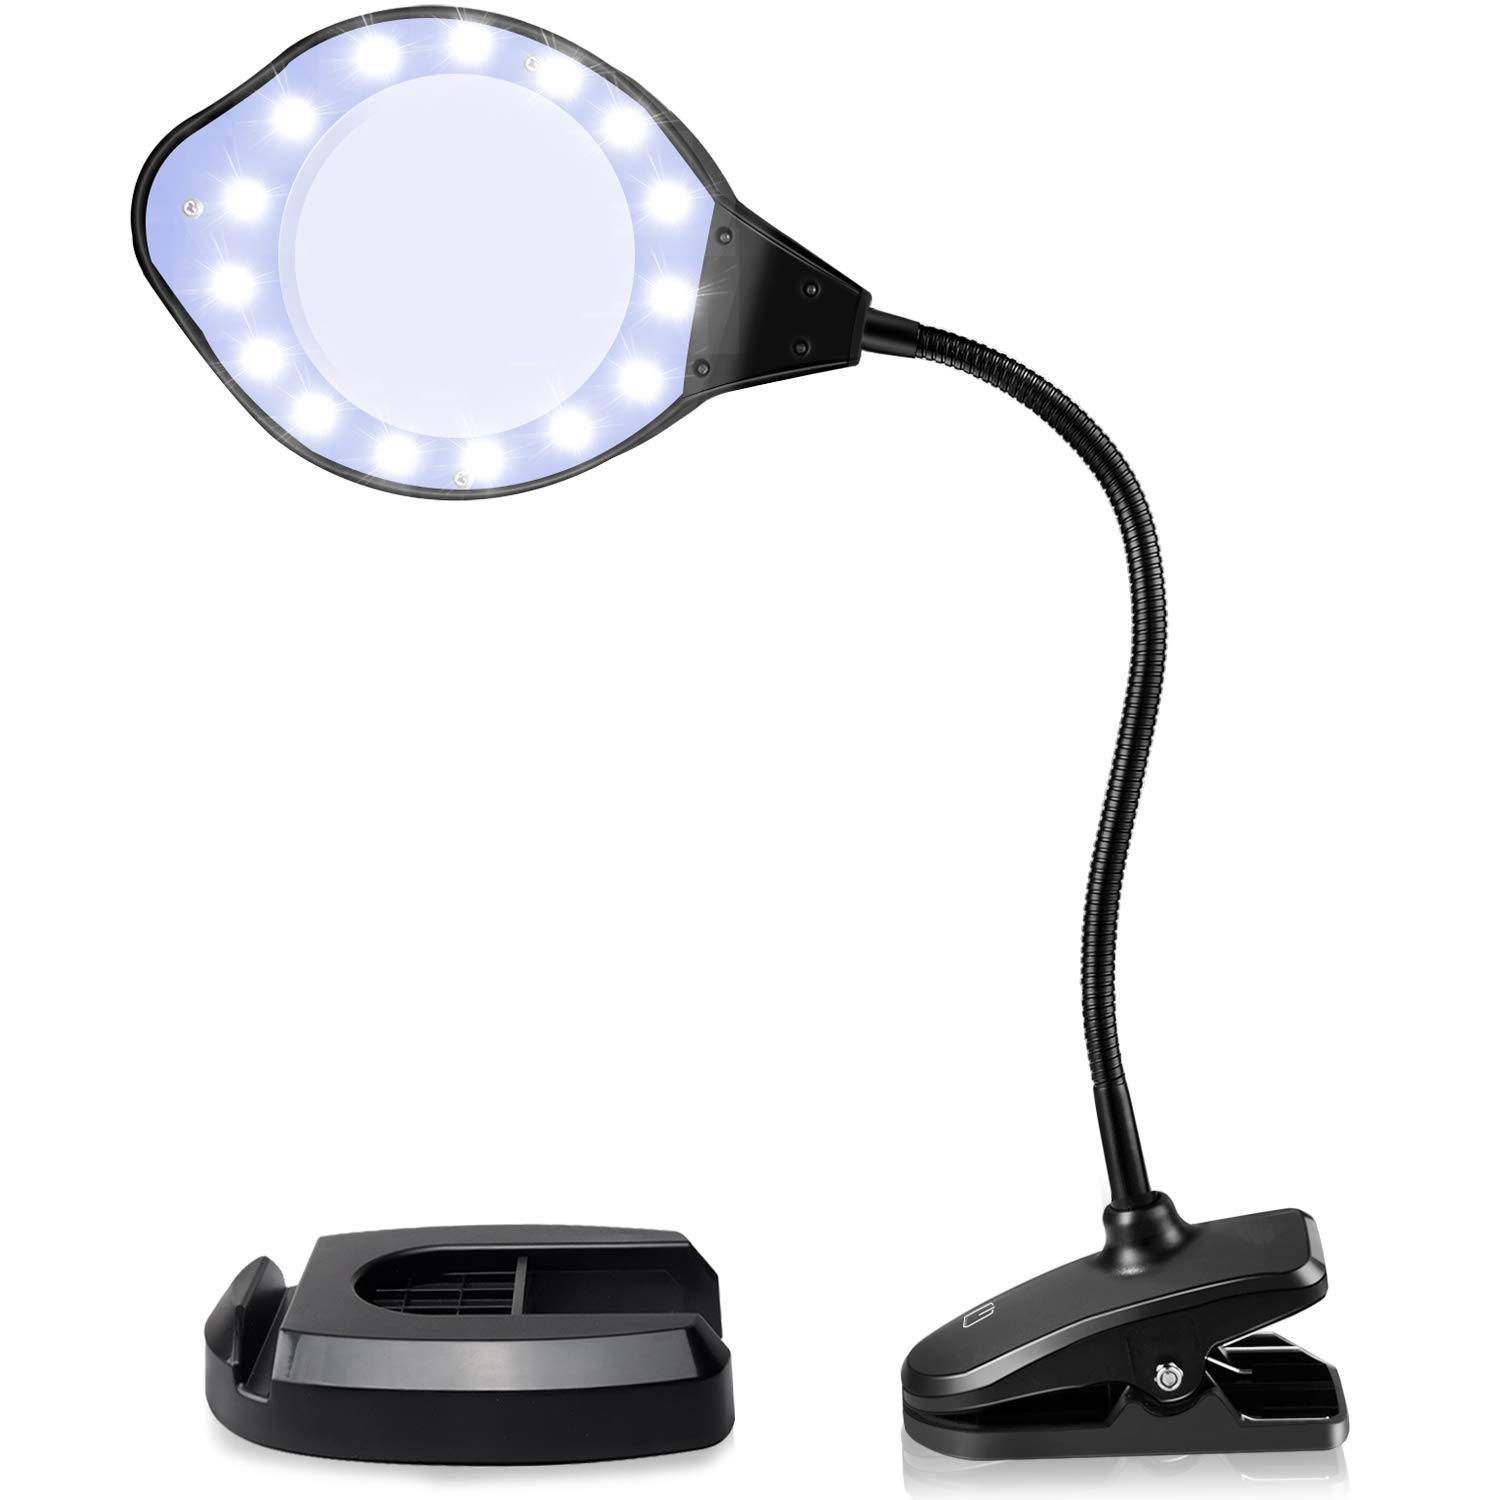 Joypea Magnifying Glass Lamp,2X-4X Magnifier LED Light with Clip and Flexible Neck,Magnifying Lamp USB Powered,Perfect for Reading,Hobbies,Task Crafts or Workbench- Black